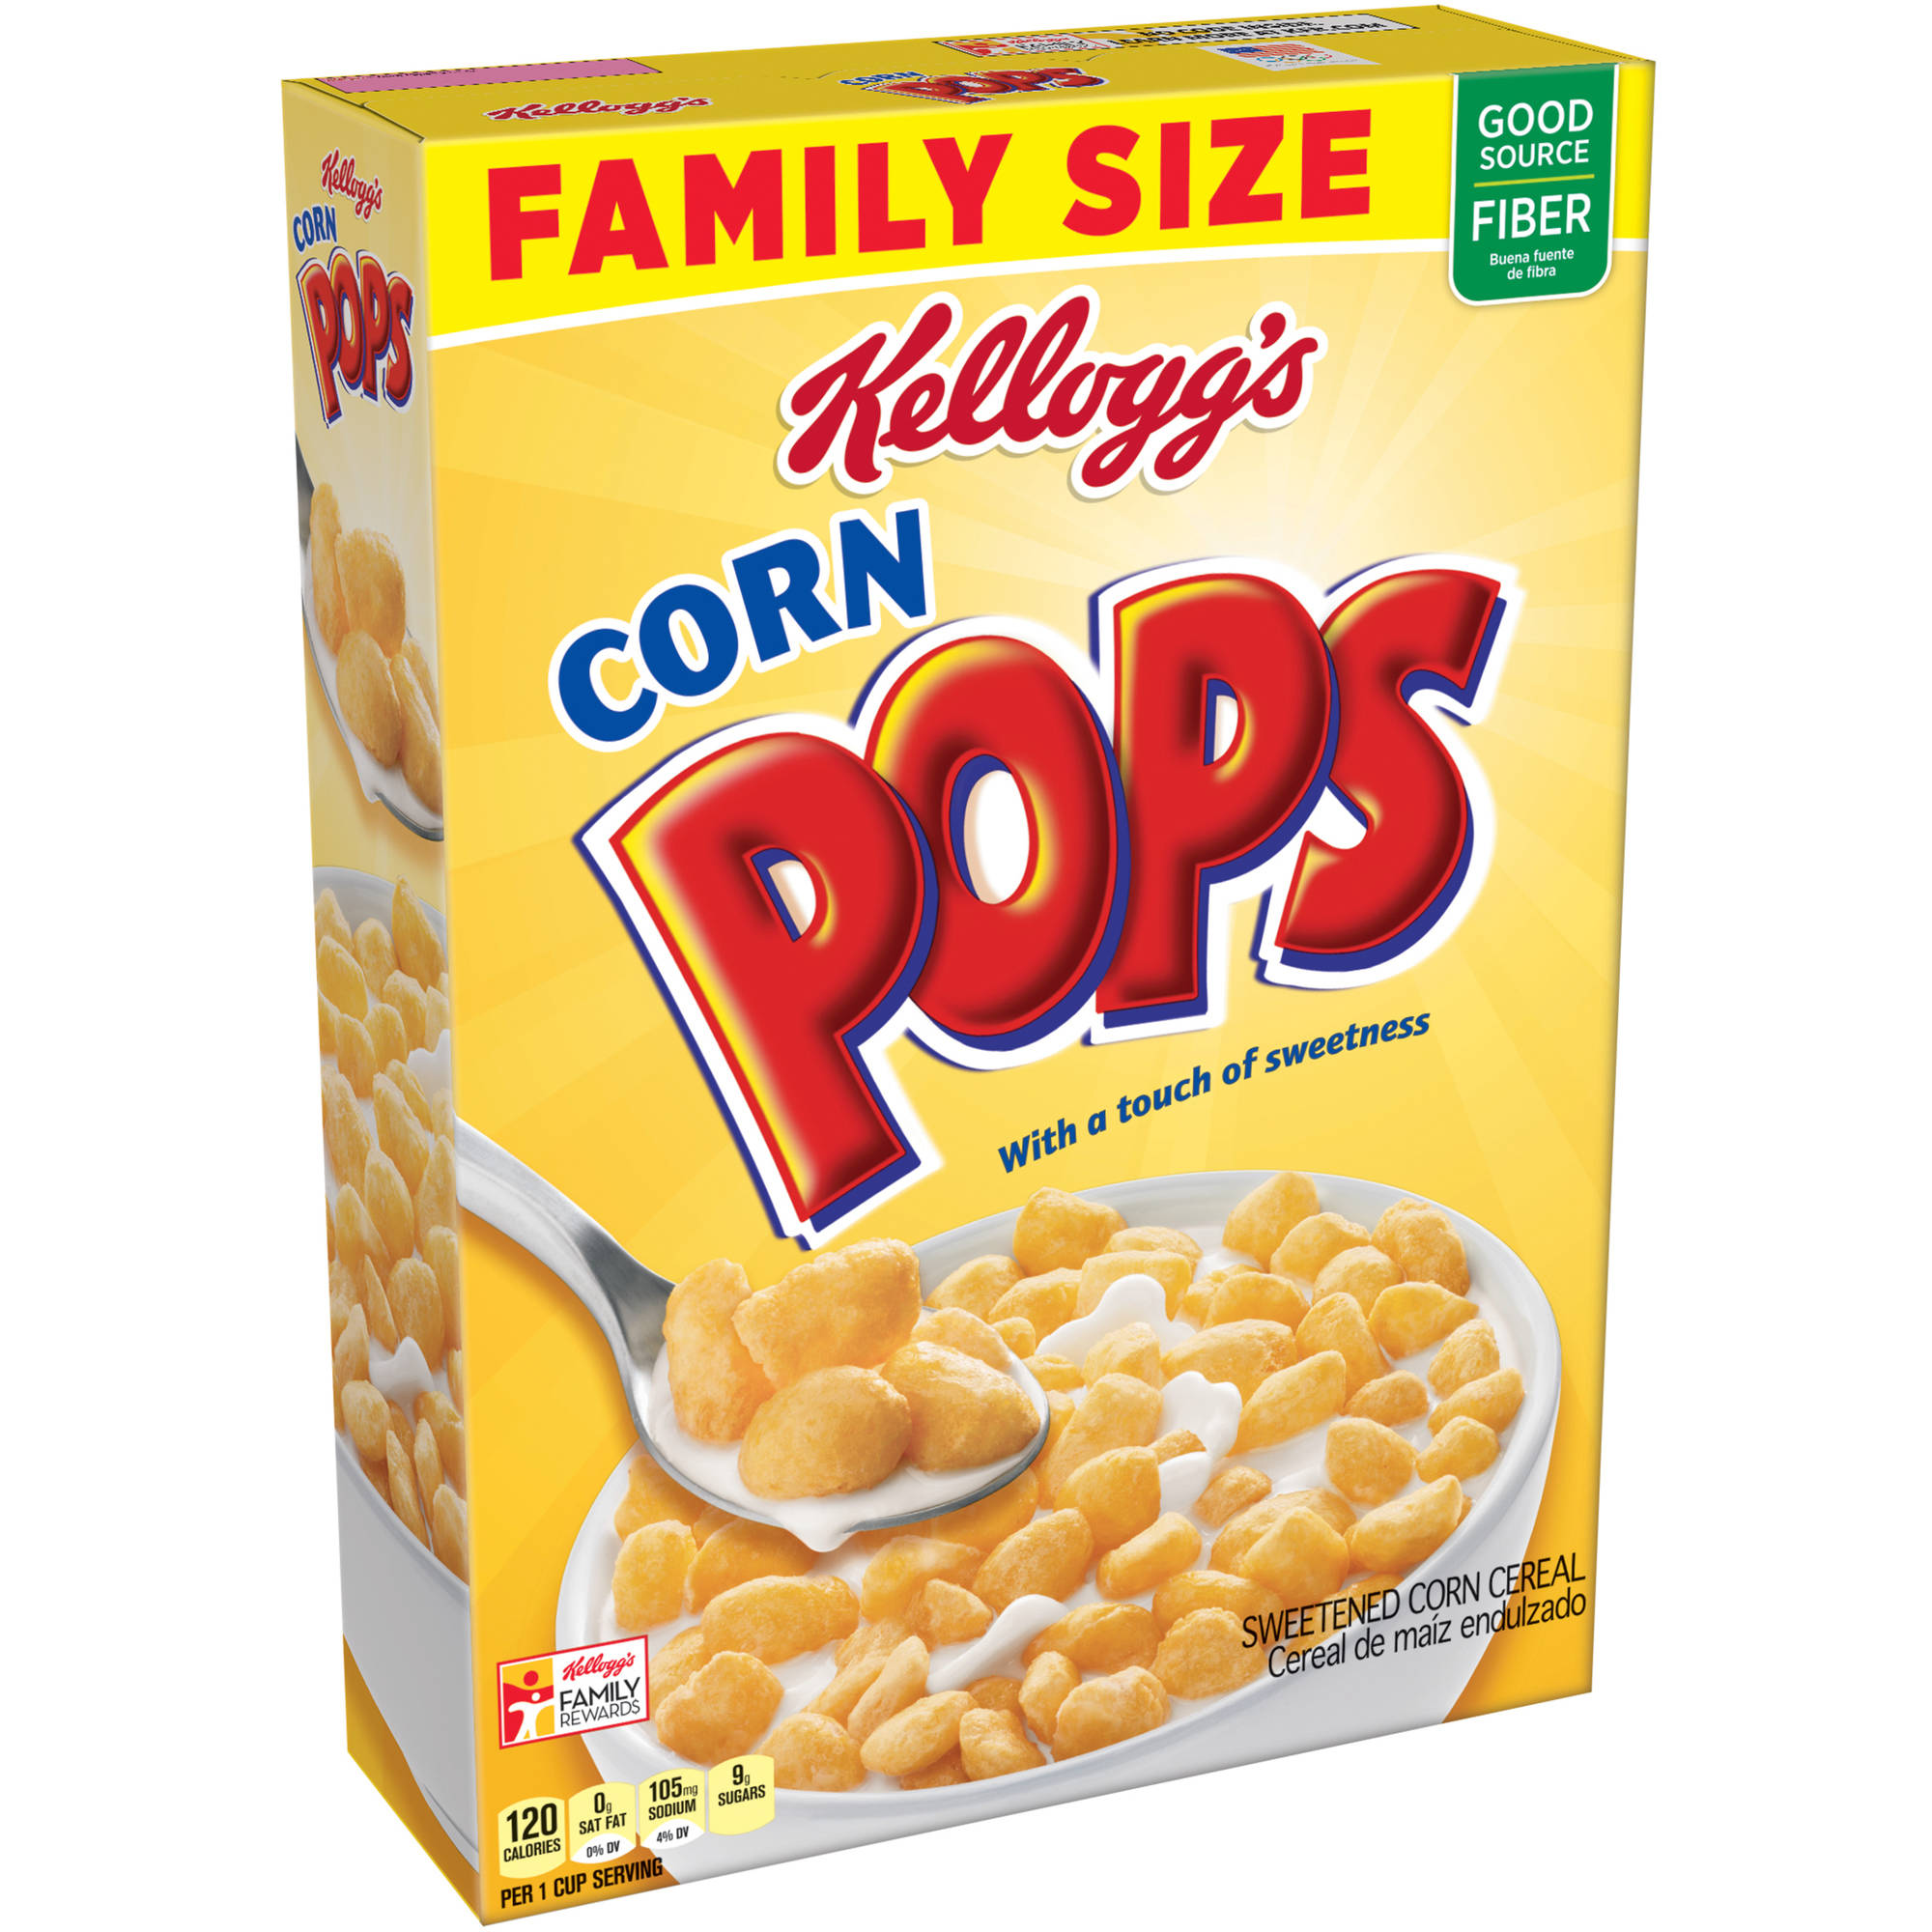 Kellogg's Corn Pops Cereal Family Size, 21.4 ounce box